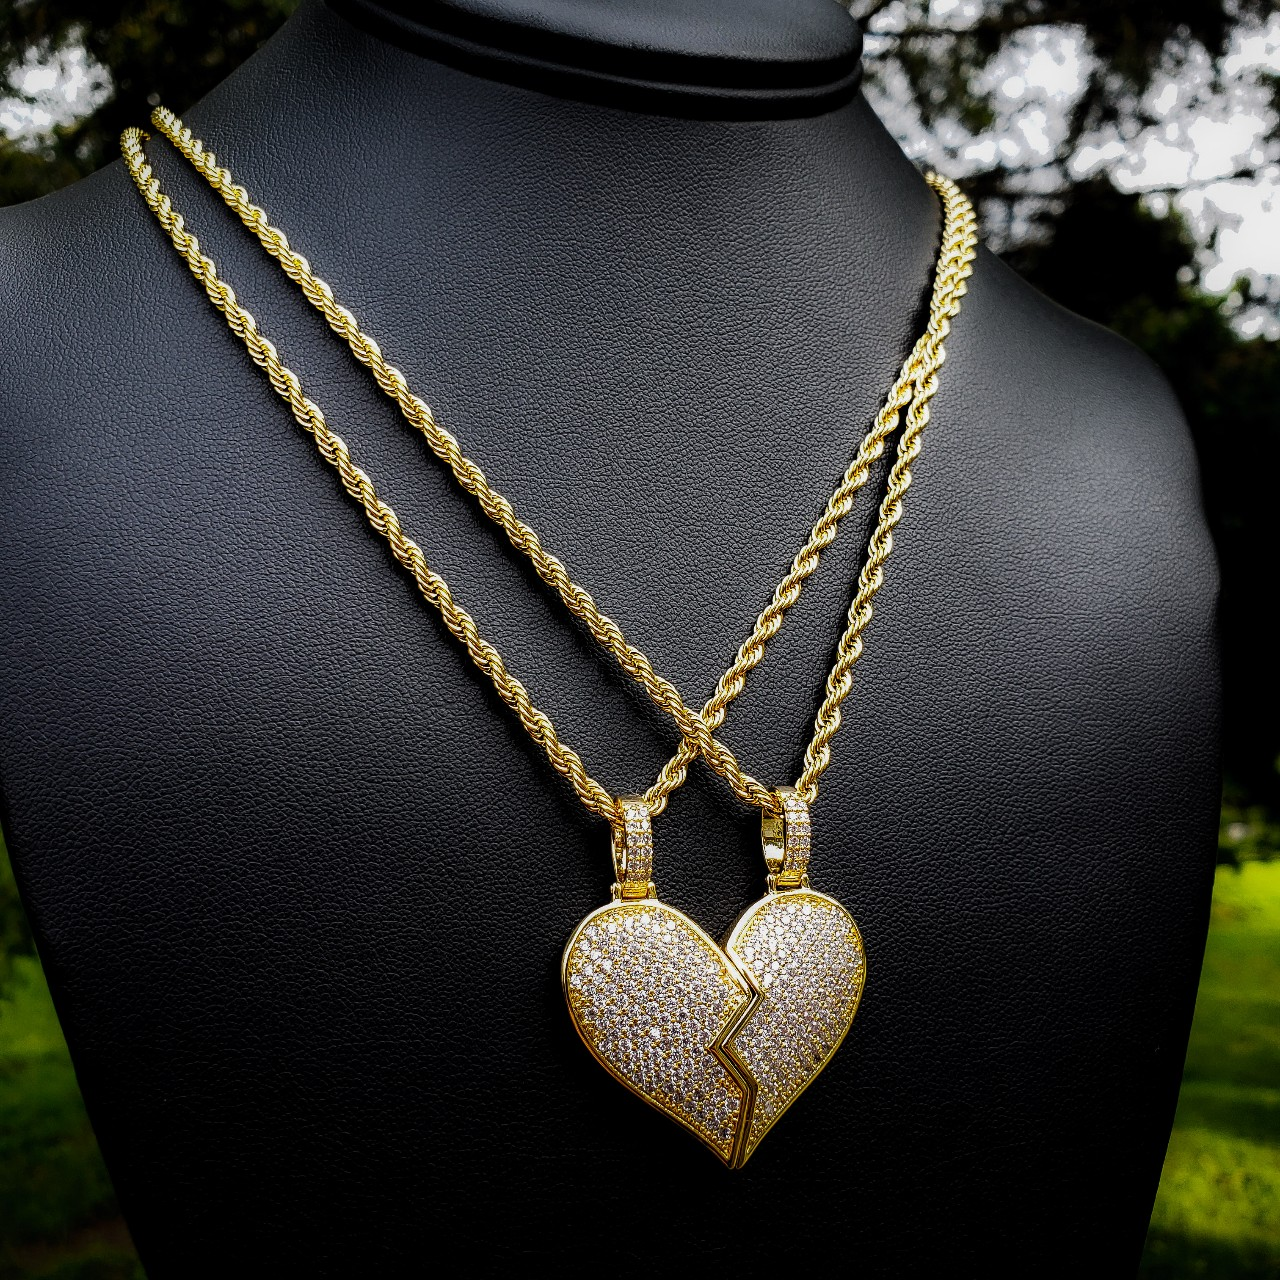 Gold Magnetic Couples Heart Necklace Set Available    - Depop